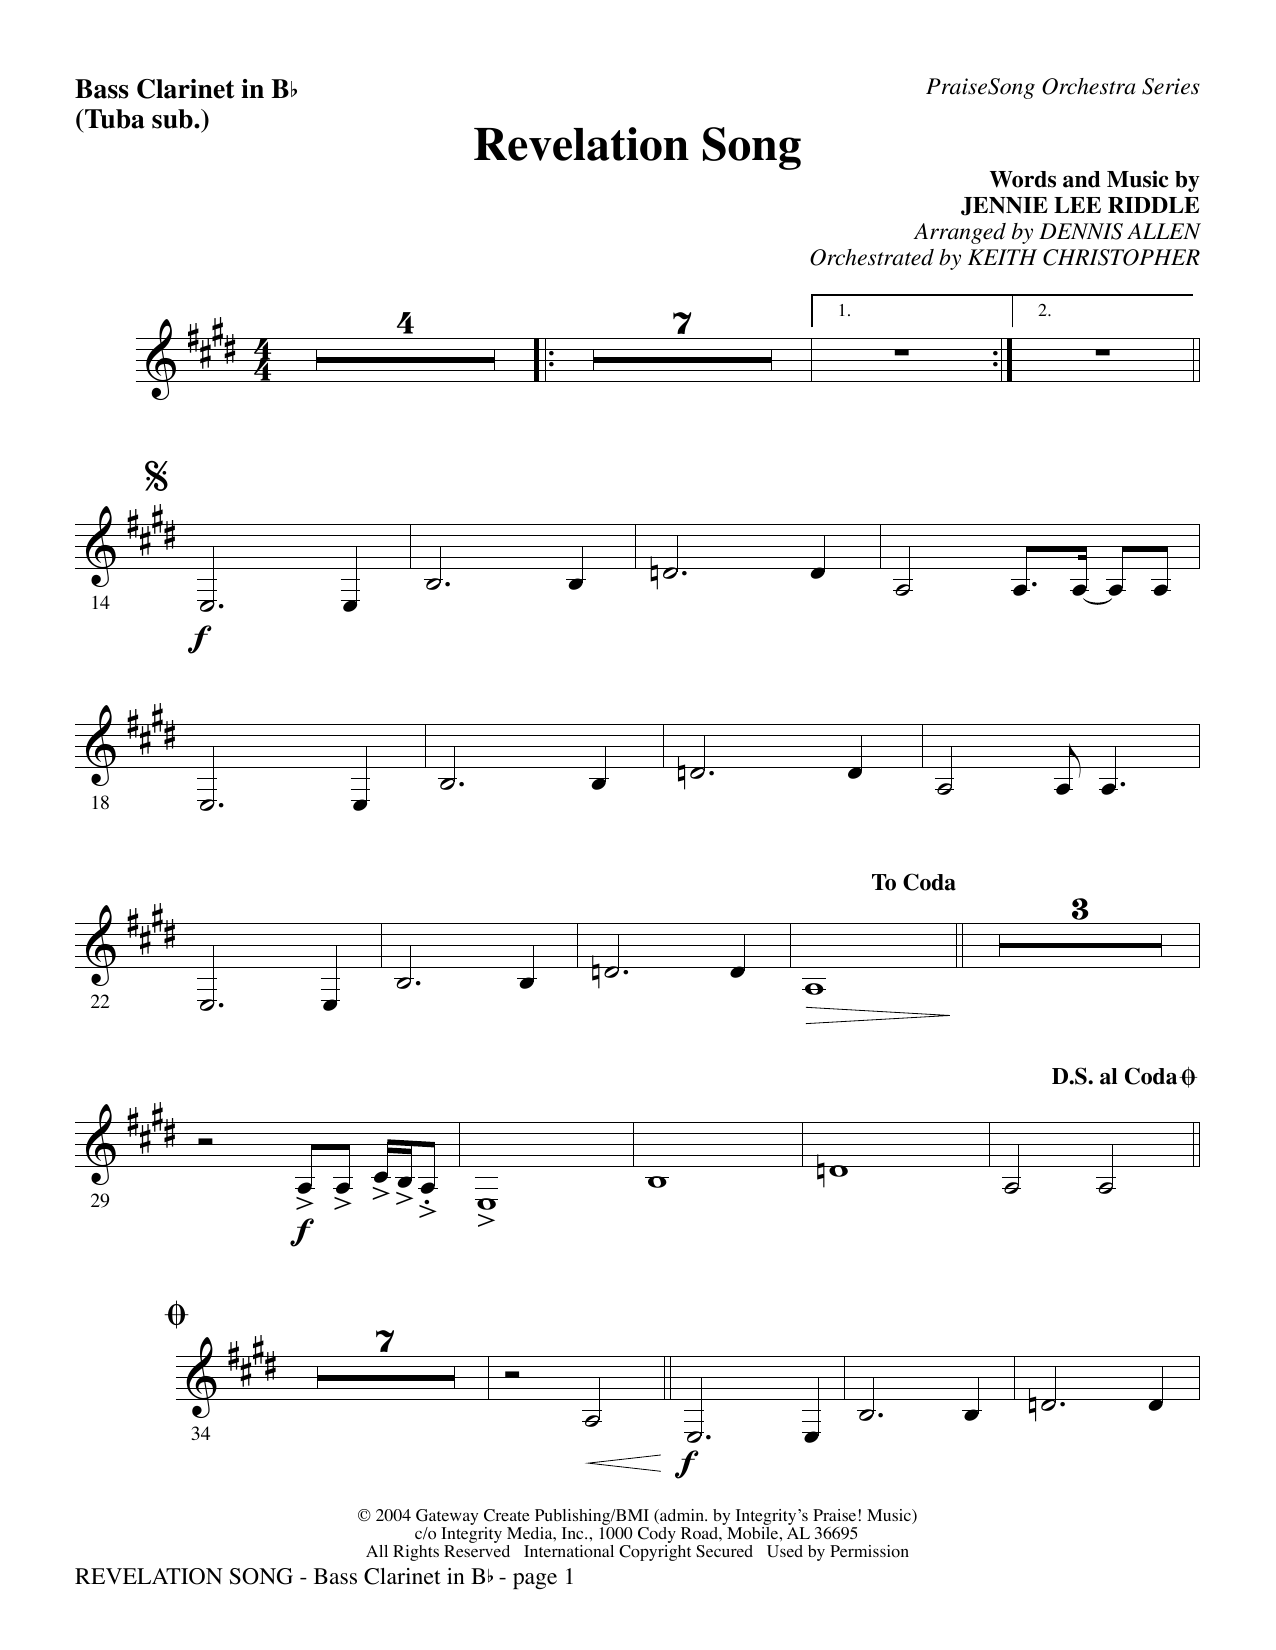 Revelation Song - Bass Clarinet (sub. Tuba) Sheet Music